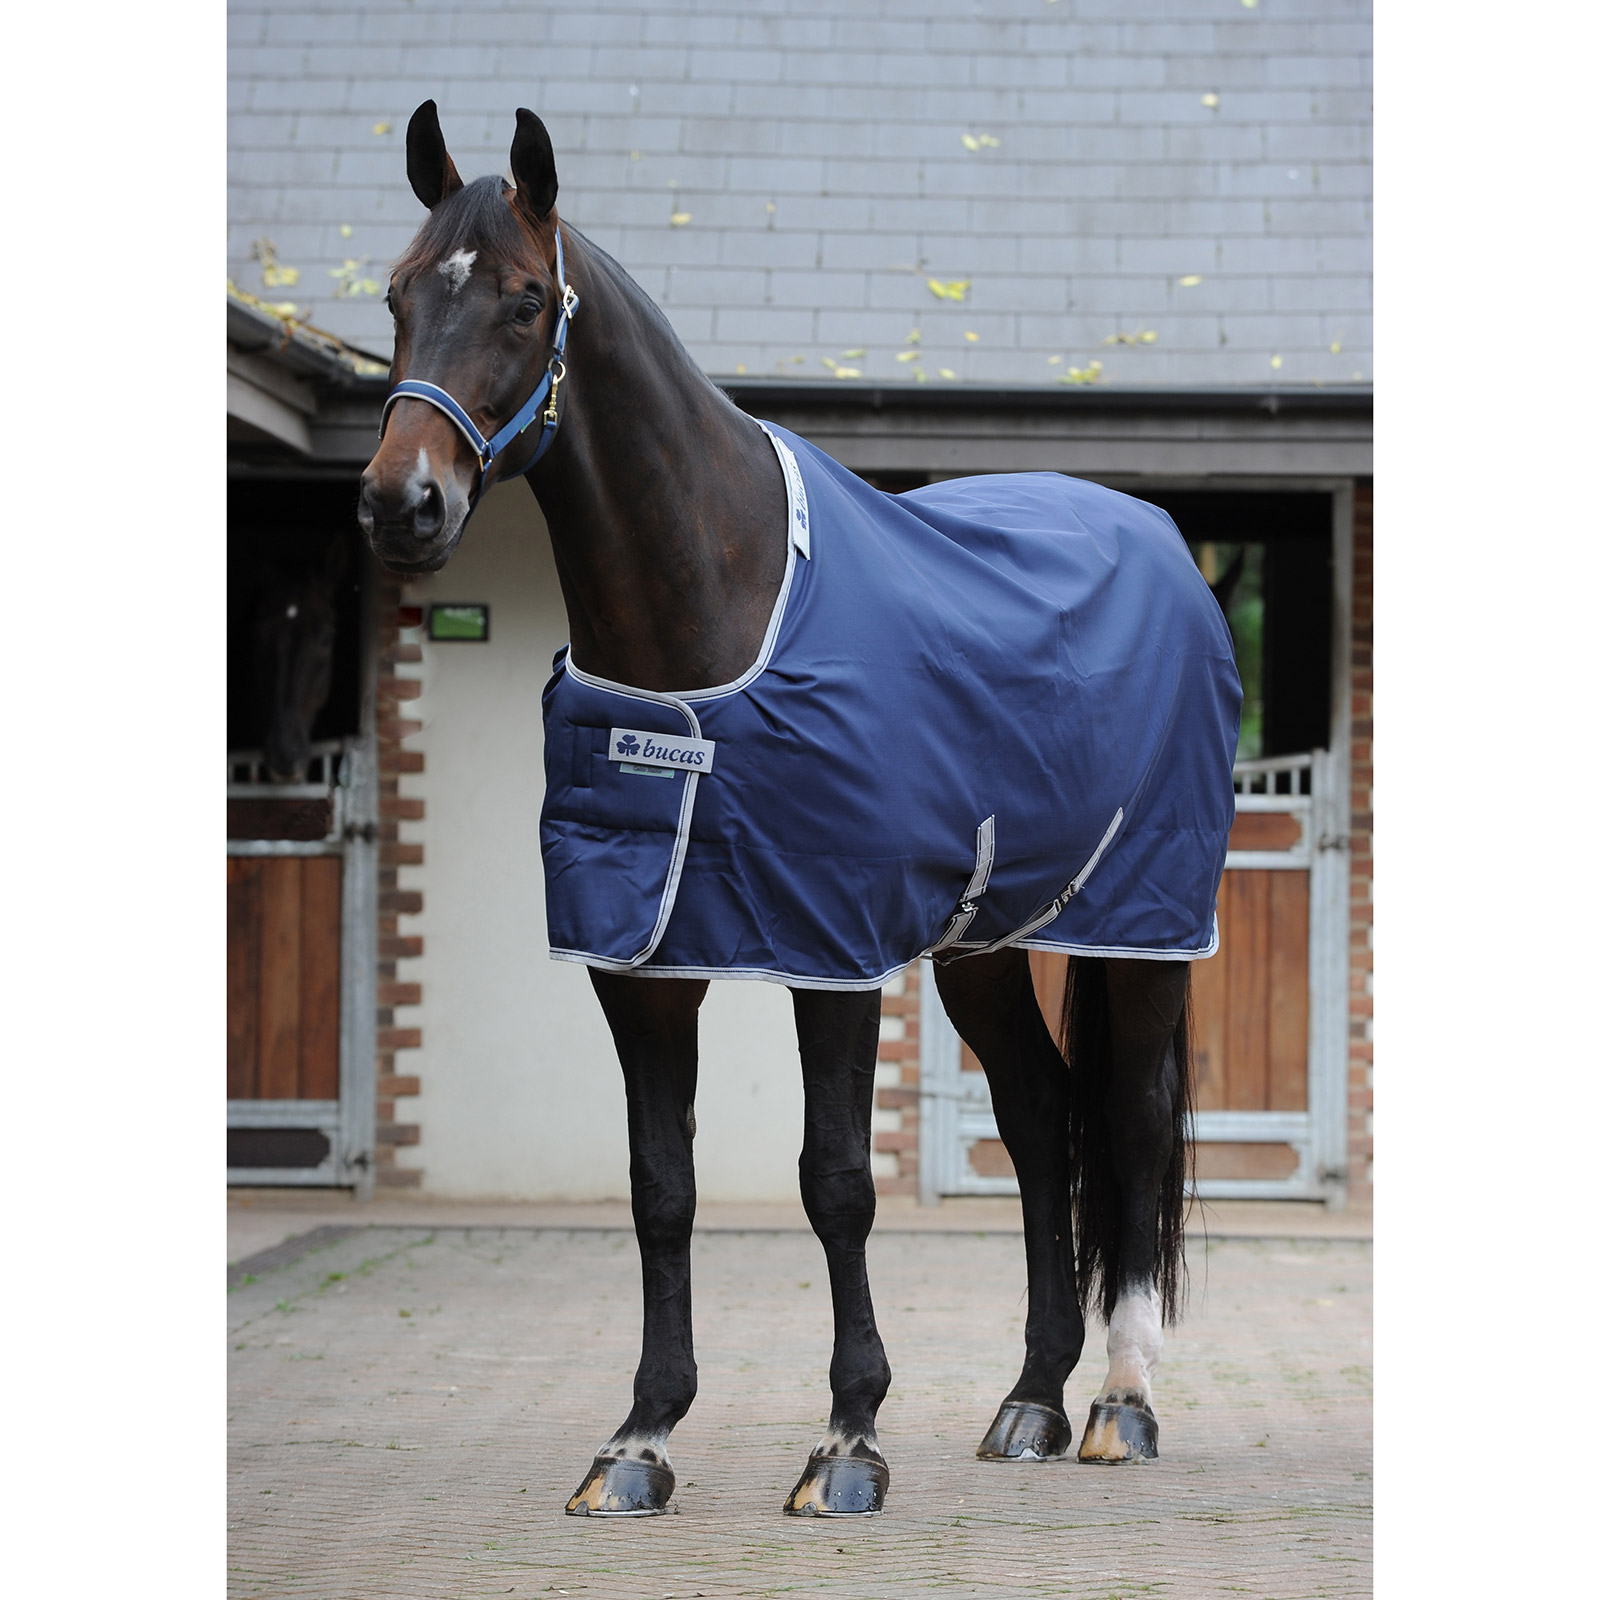 Bucas Celtic Stable Medium täcke